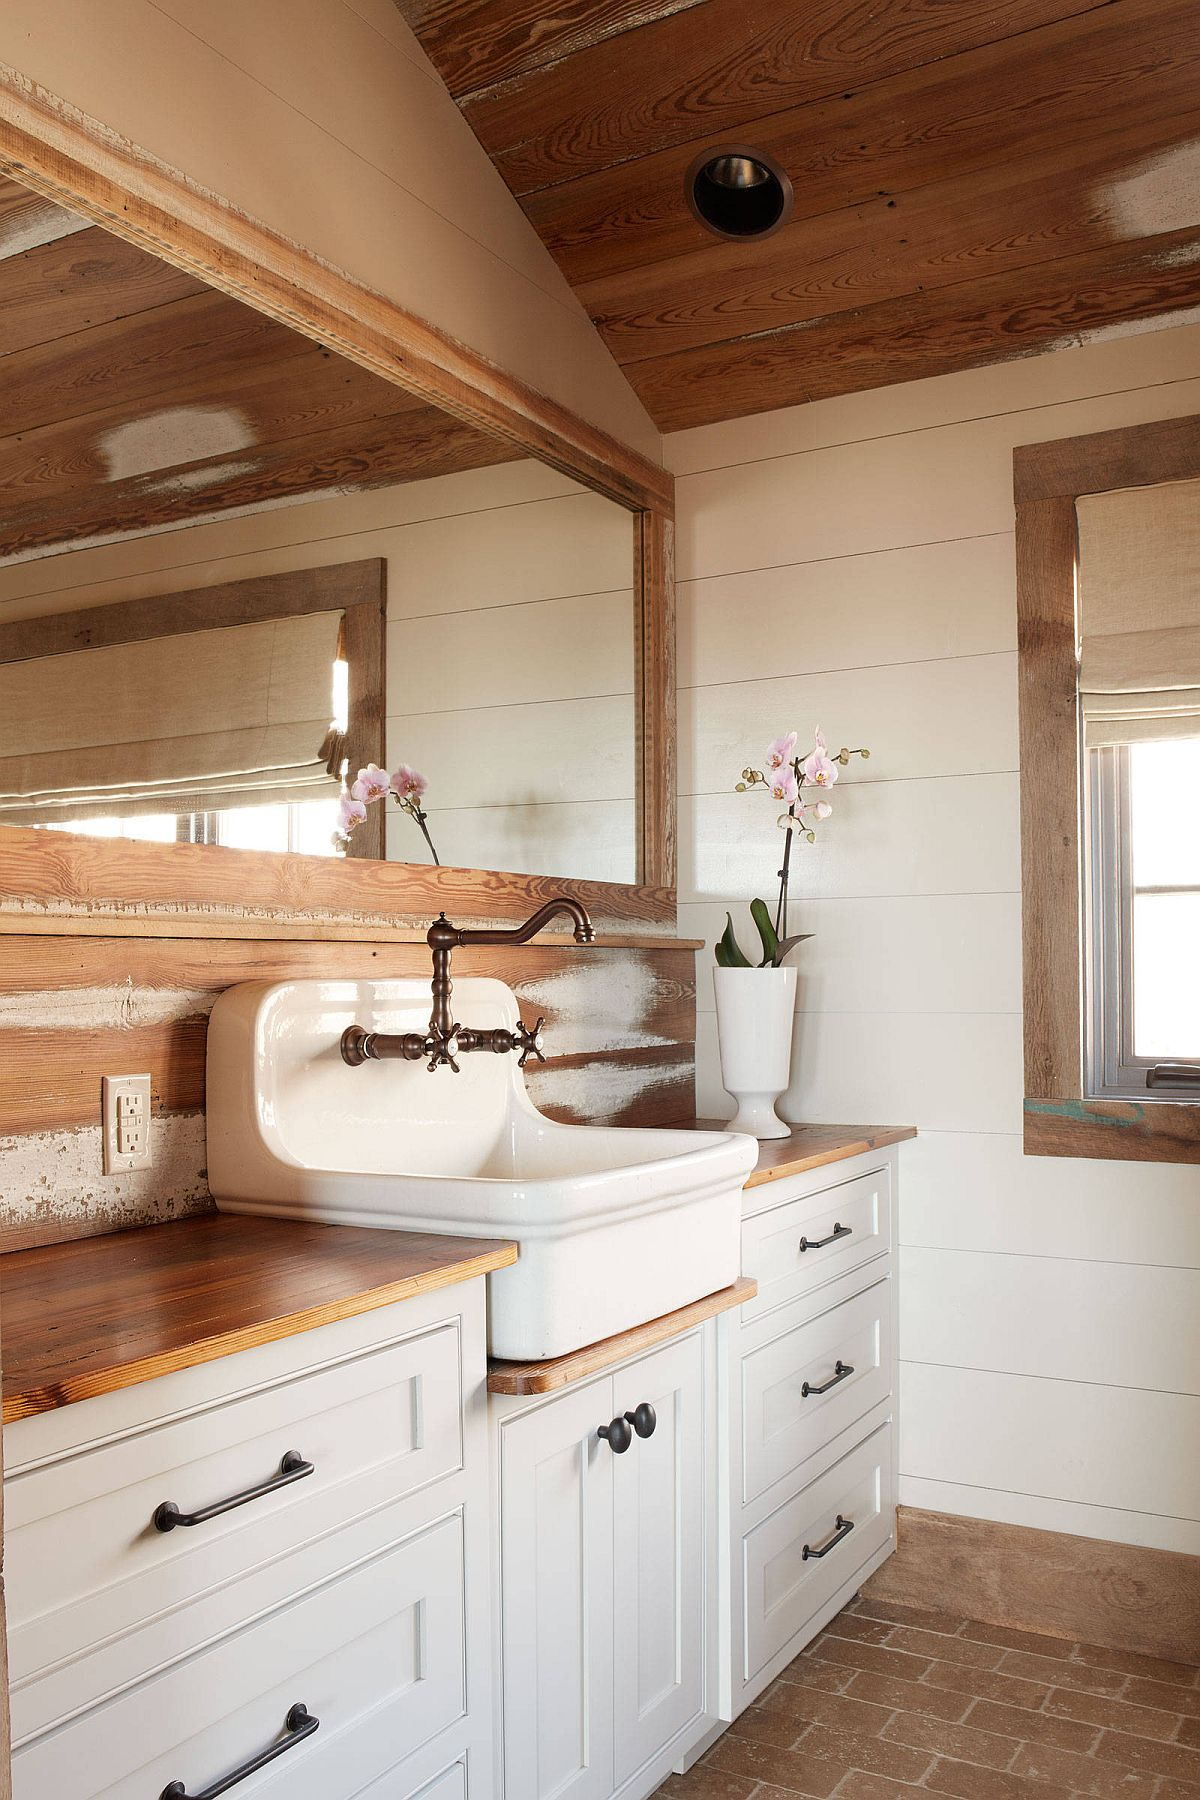 Rustic-bathroom-in-white-and-wood-feels-cozy-and-inviting-47901